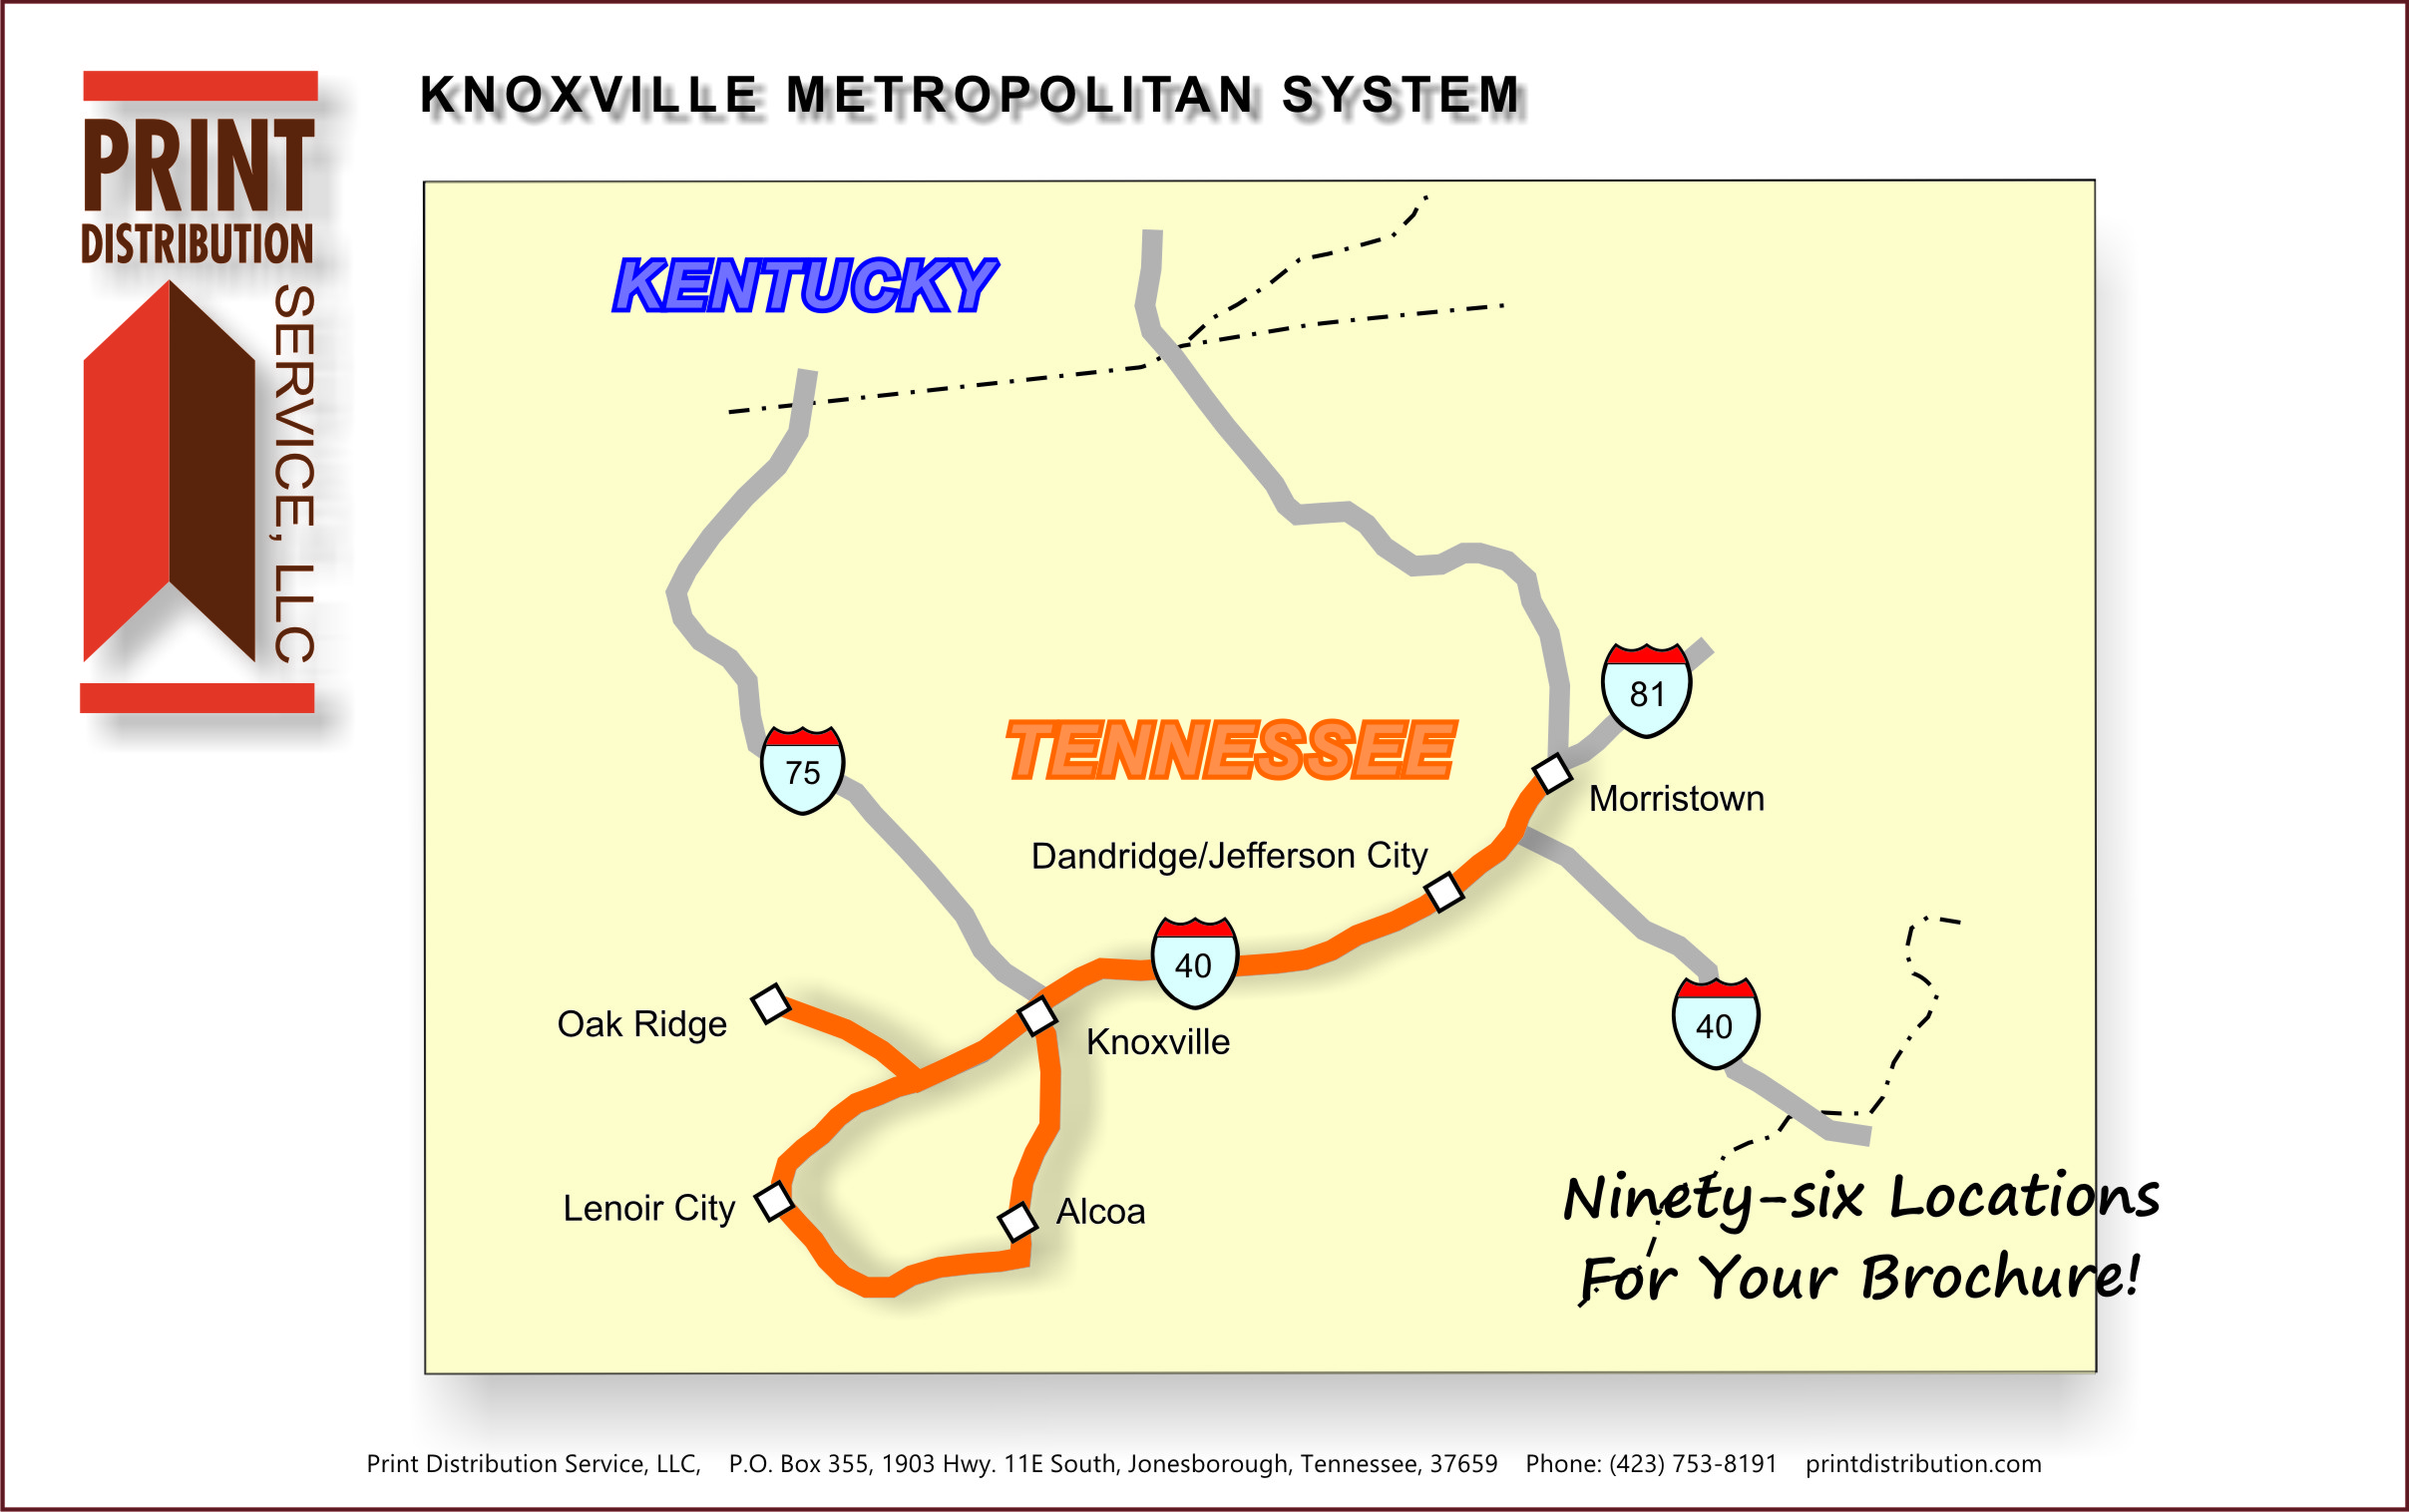 Knoxville Tennessee Metropolitan System